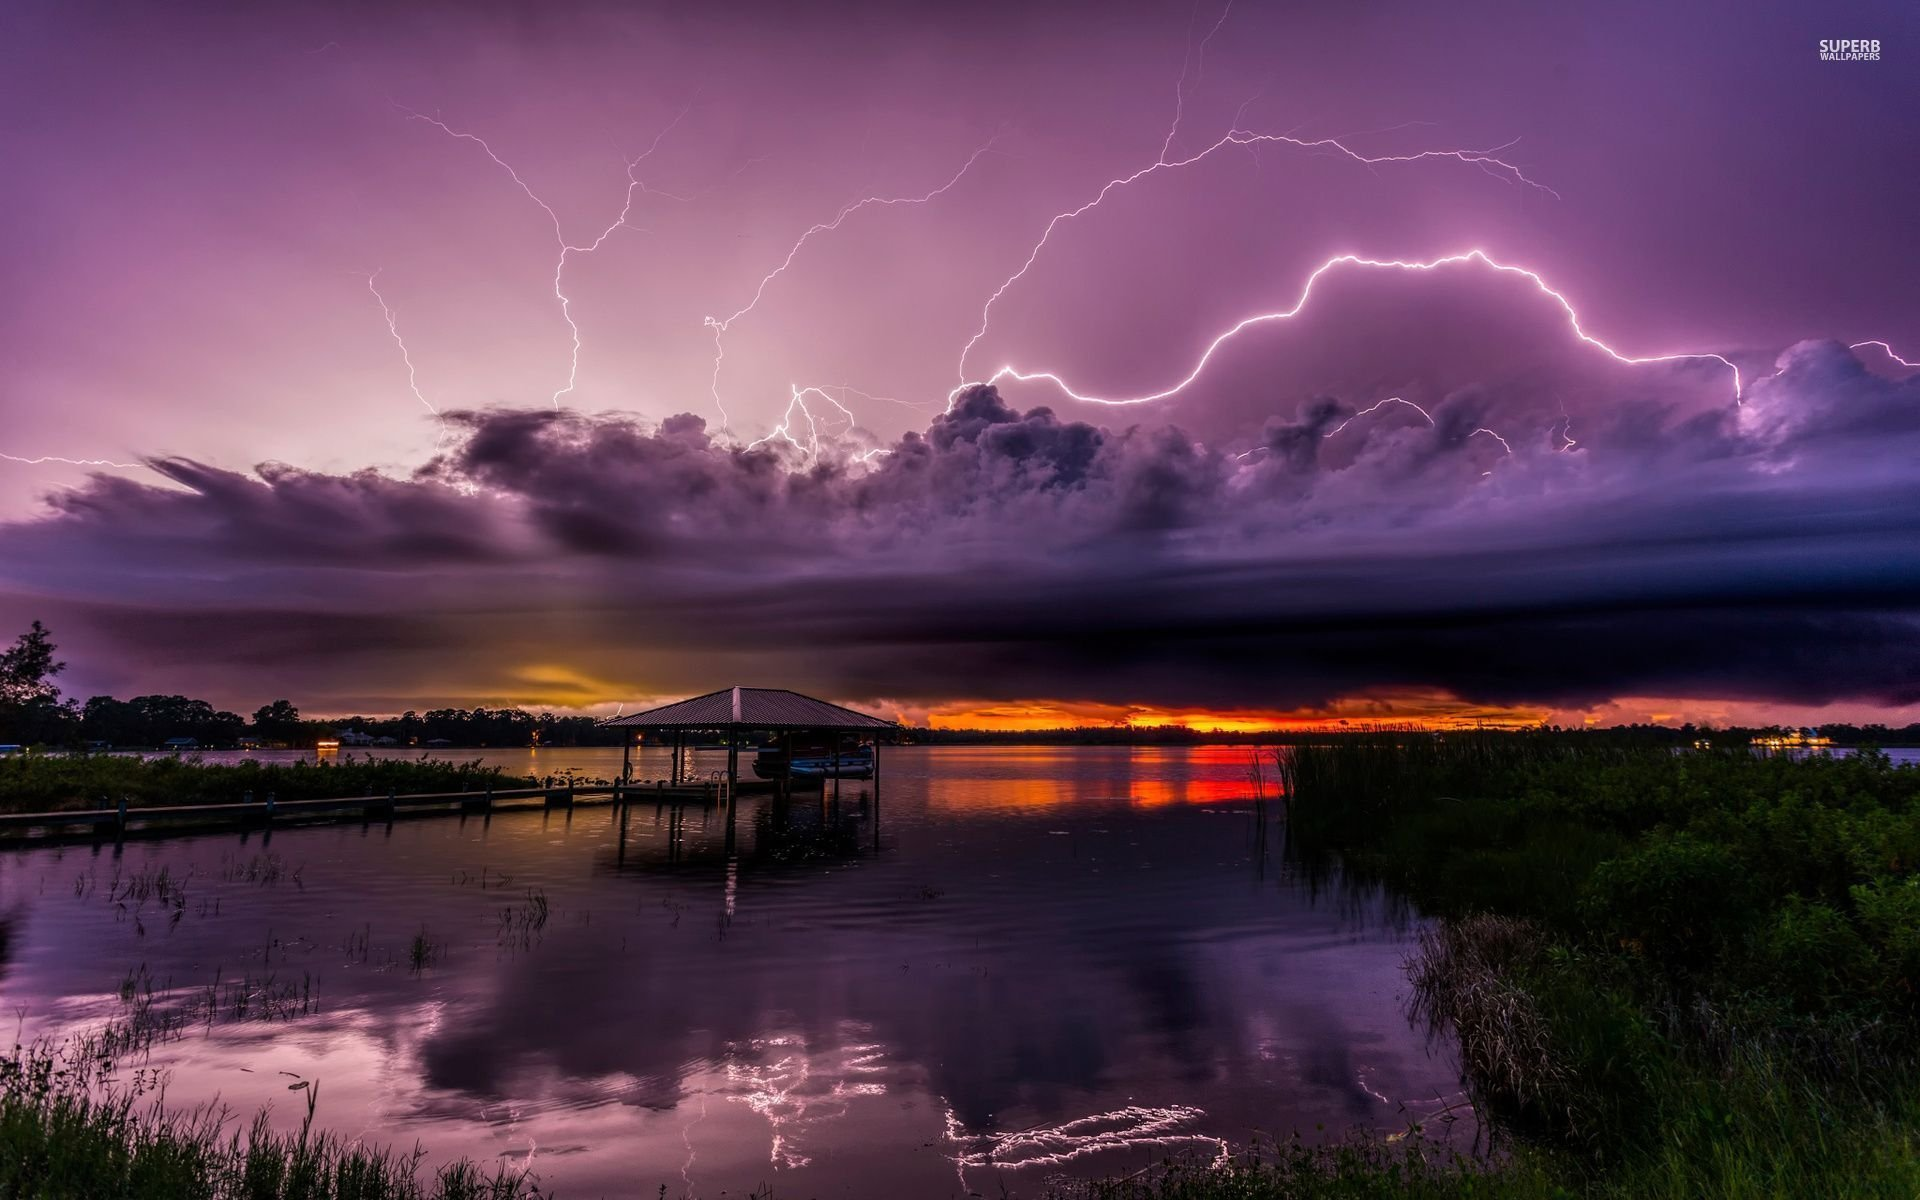 stormy wallpapers photos and desktop backgrounds up to 8k